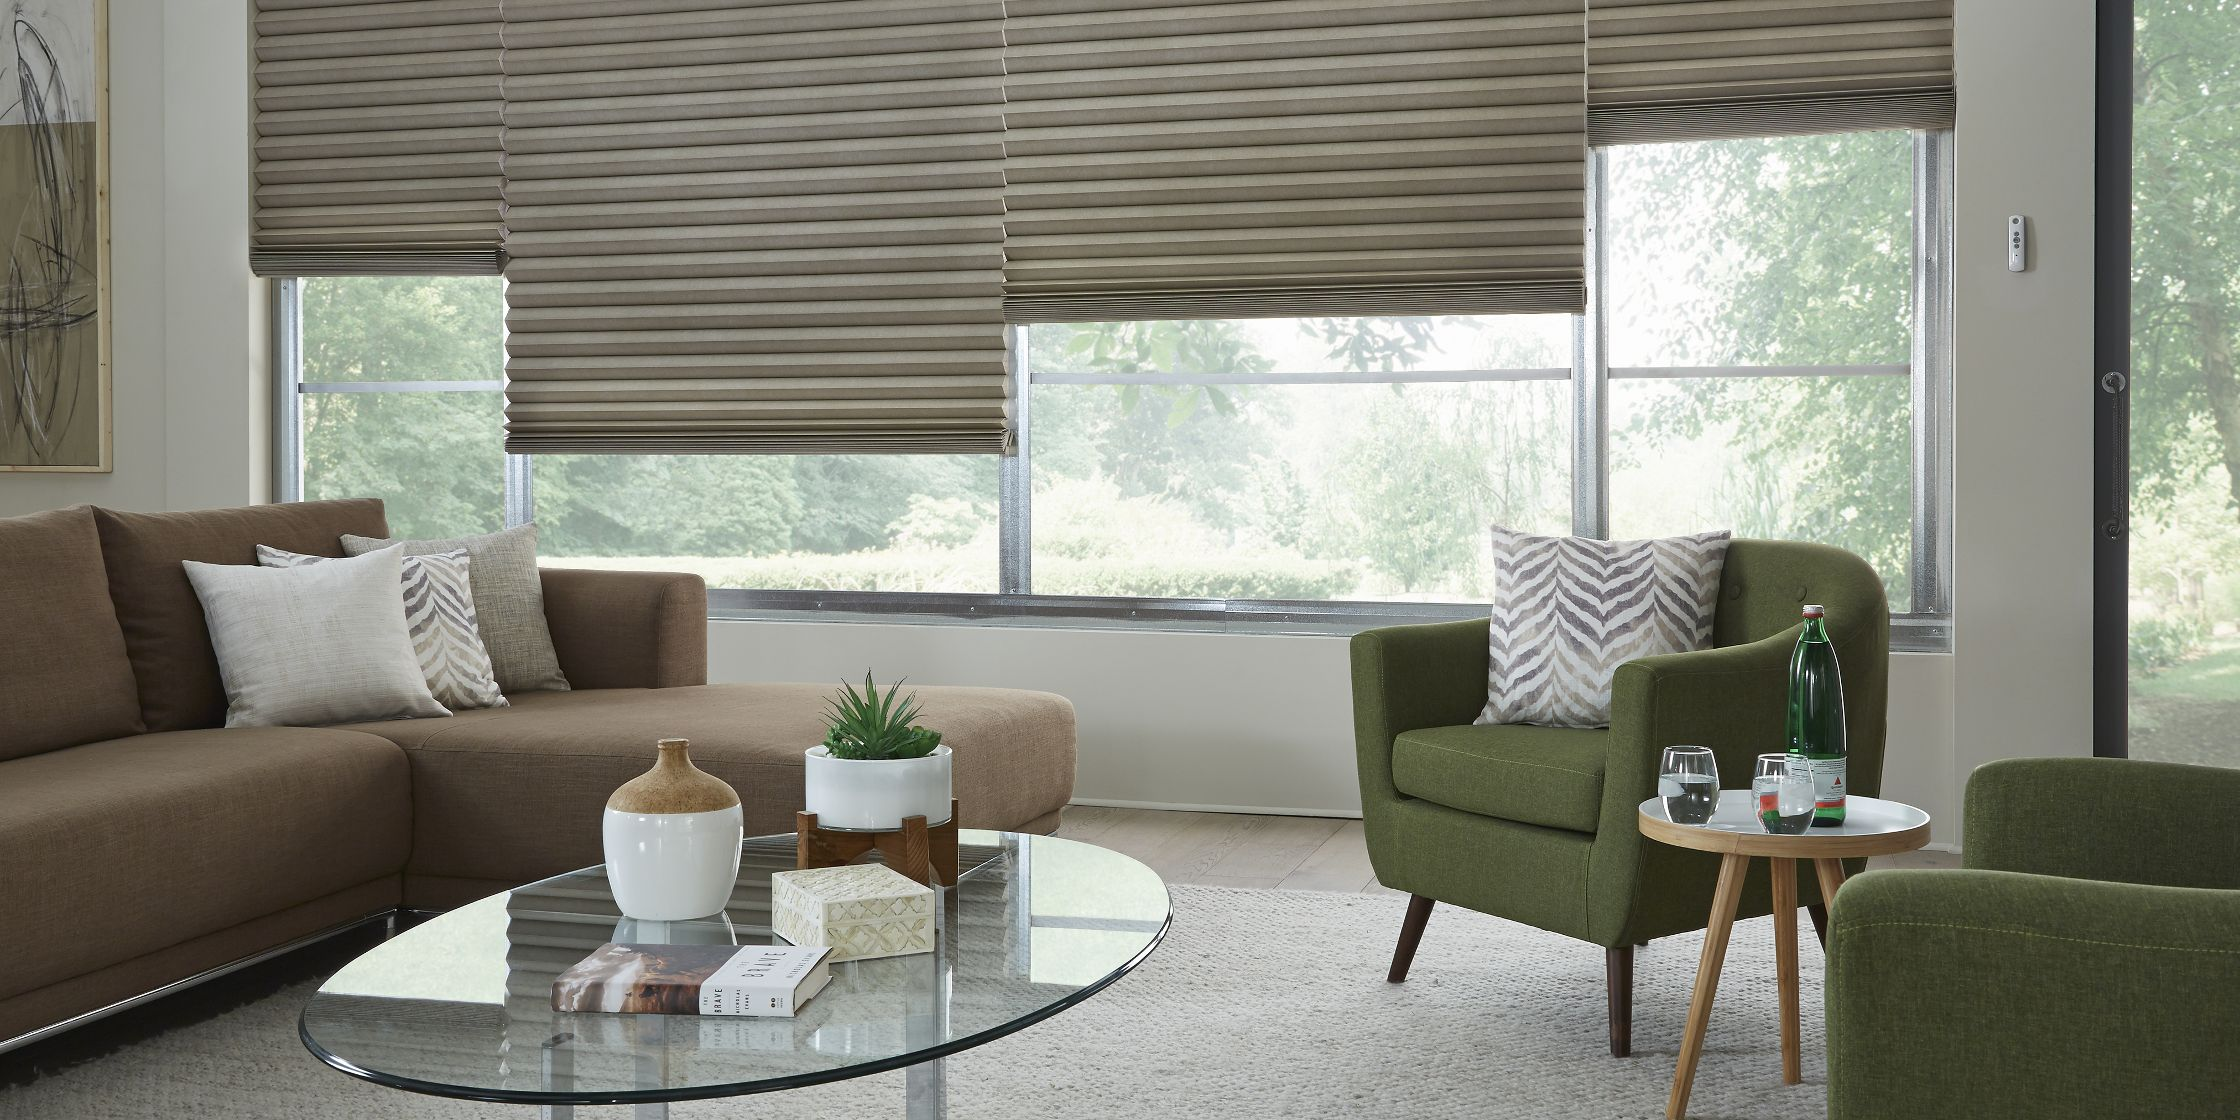 Motorized cellular shades are among the many options available at Stoneside